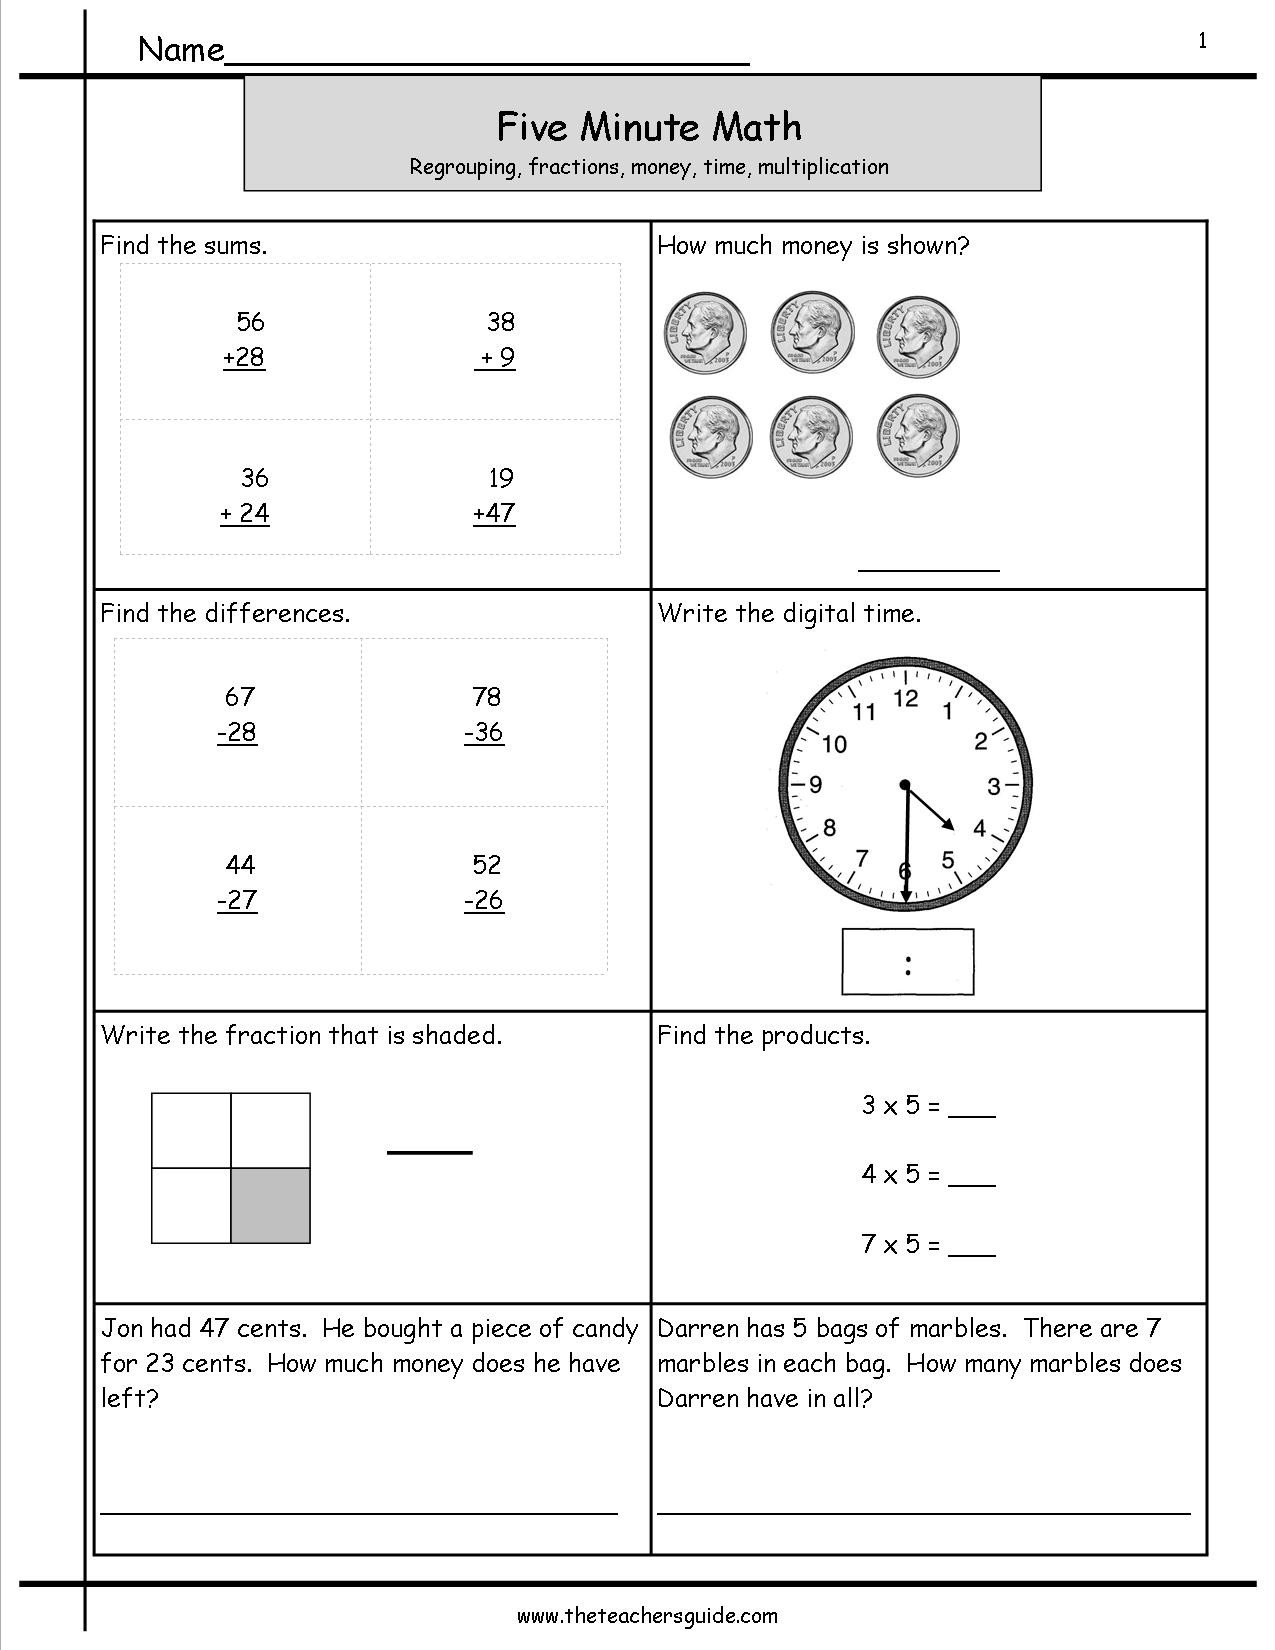 Minute Math Subtraction Five Minute Math Review Worksheets From the Teacher Guide